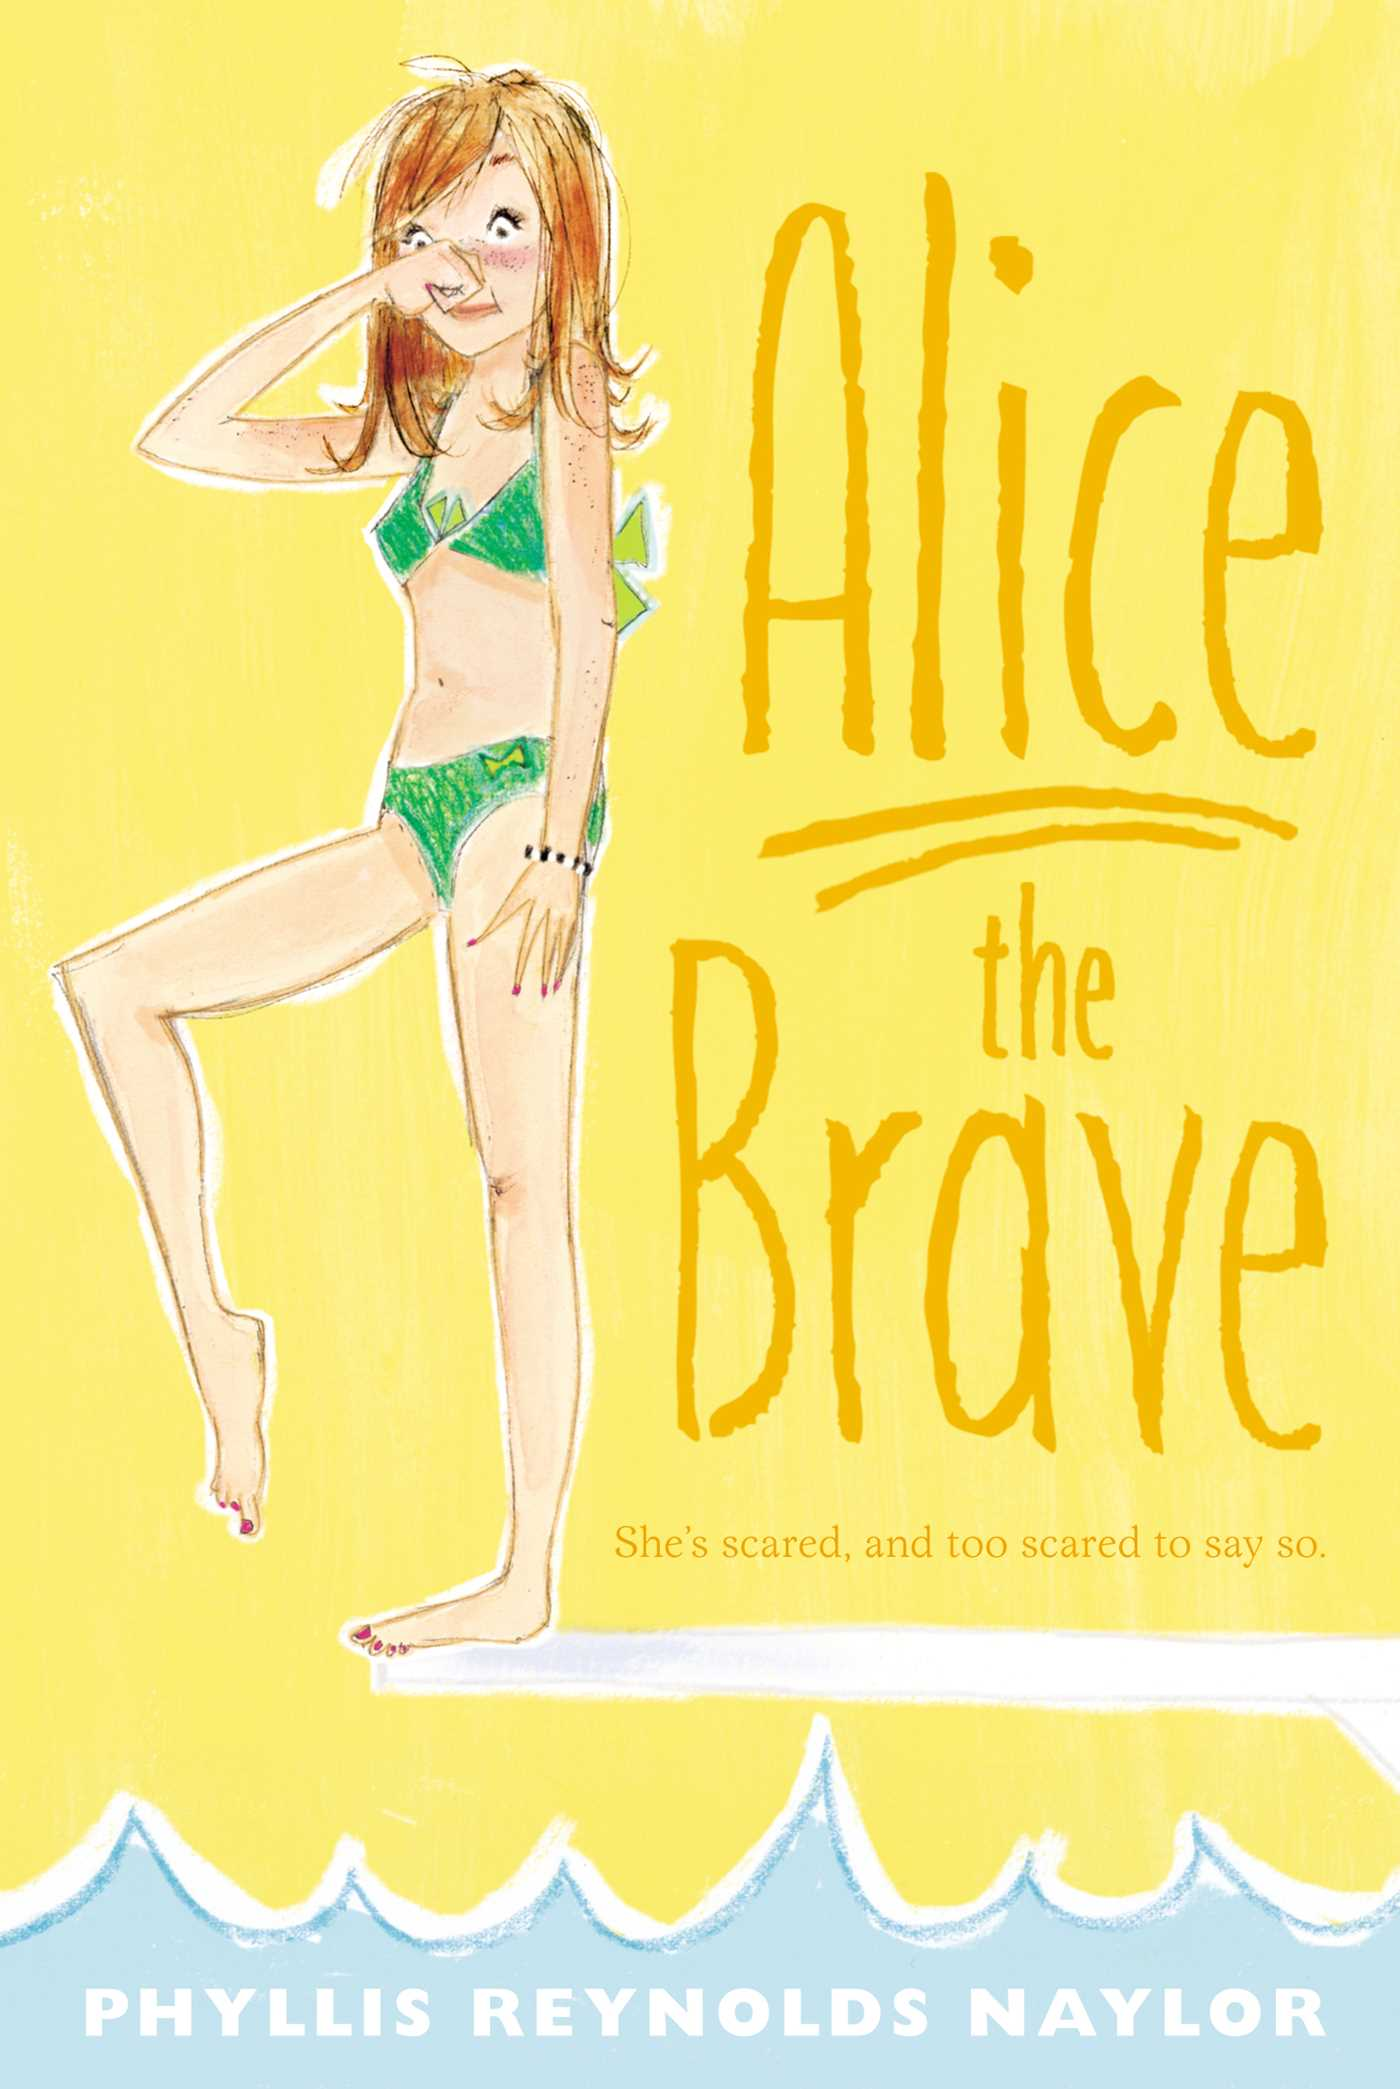 Alice-the-brave-9781442465824_hr